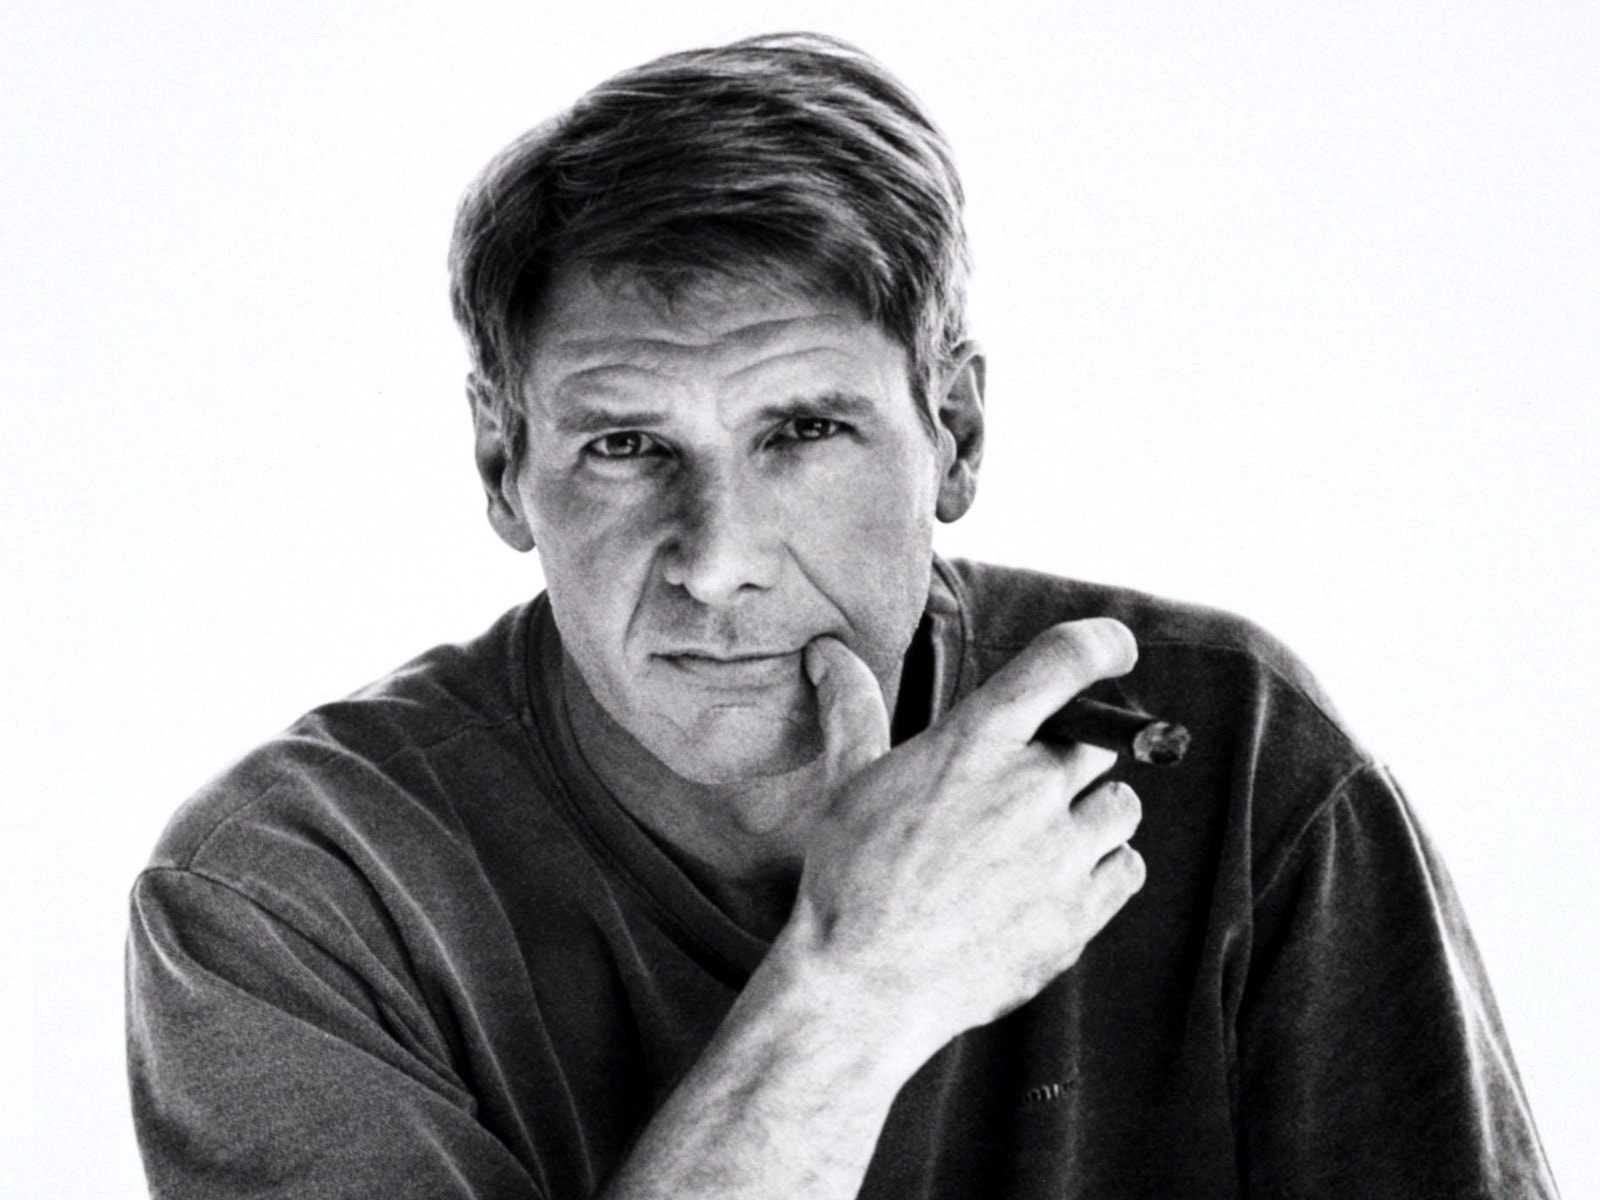 1600x1200 - Harrison Ford Wallpapers 7